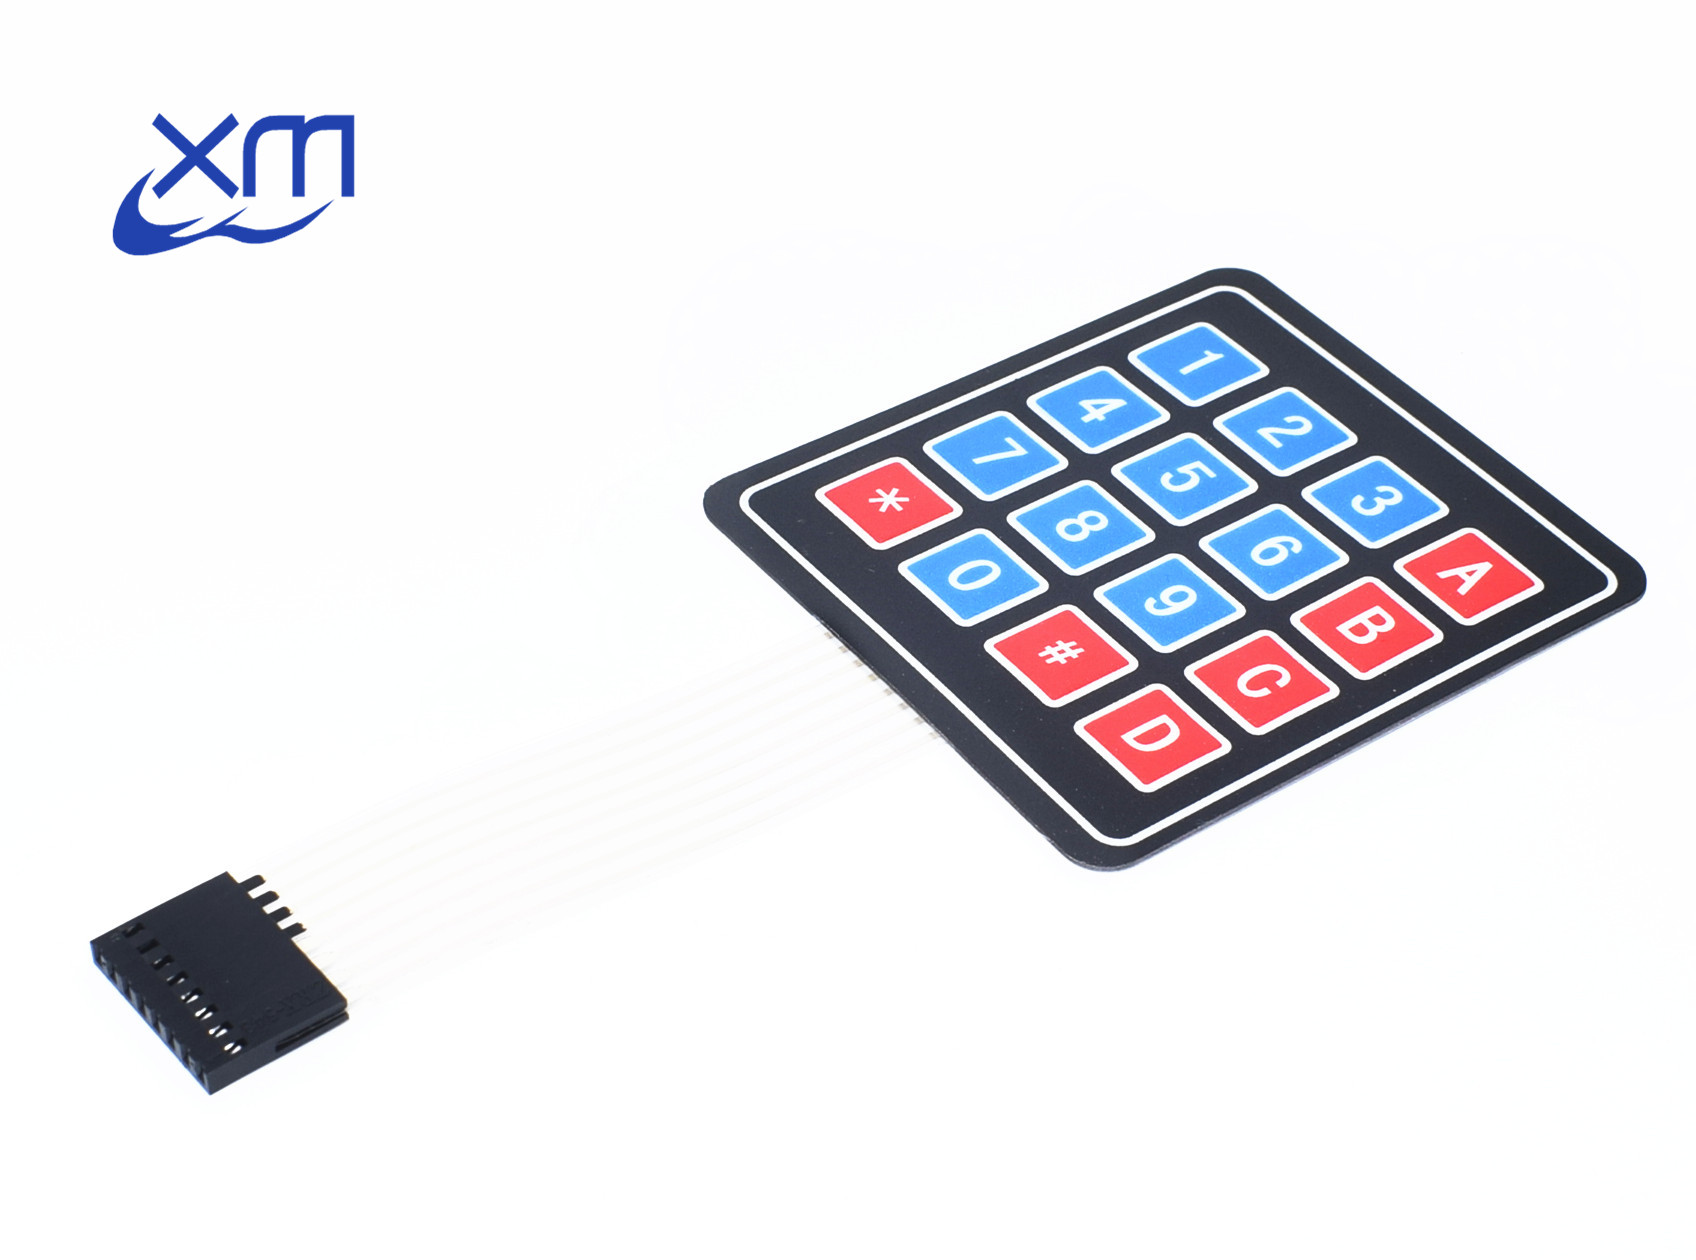 1PCS/LOT 4*4 Matrix Array/Matrix Keyboard 16 Key Membrane Switch Keypad 4X4 Matrix Keyboard H75 ...